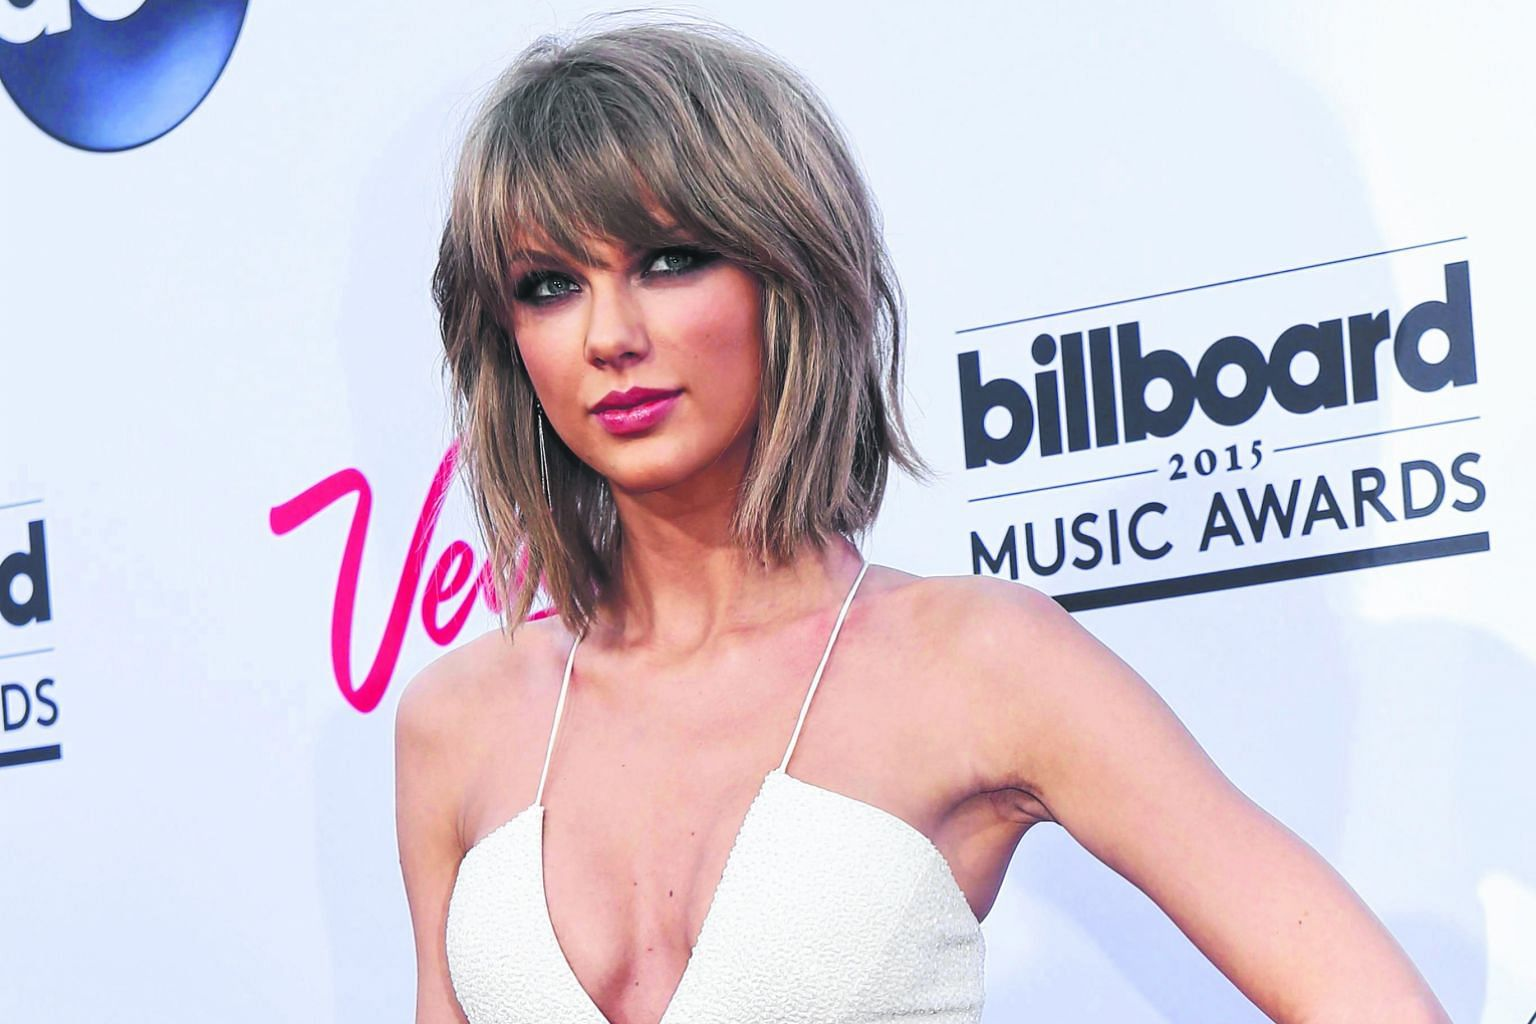 The rumoured bad blood between pop superstars Taylor Swift (far left) and Katy Perry (left) went public when Perry tweeted pointed criticism of Swift.